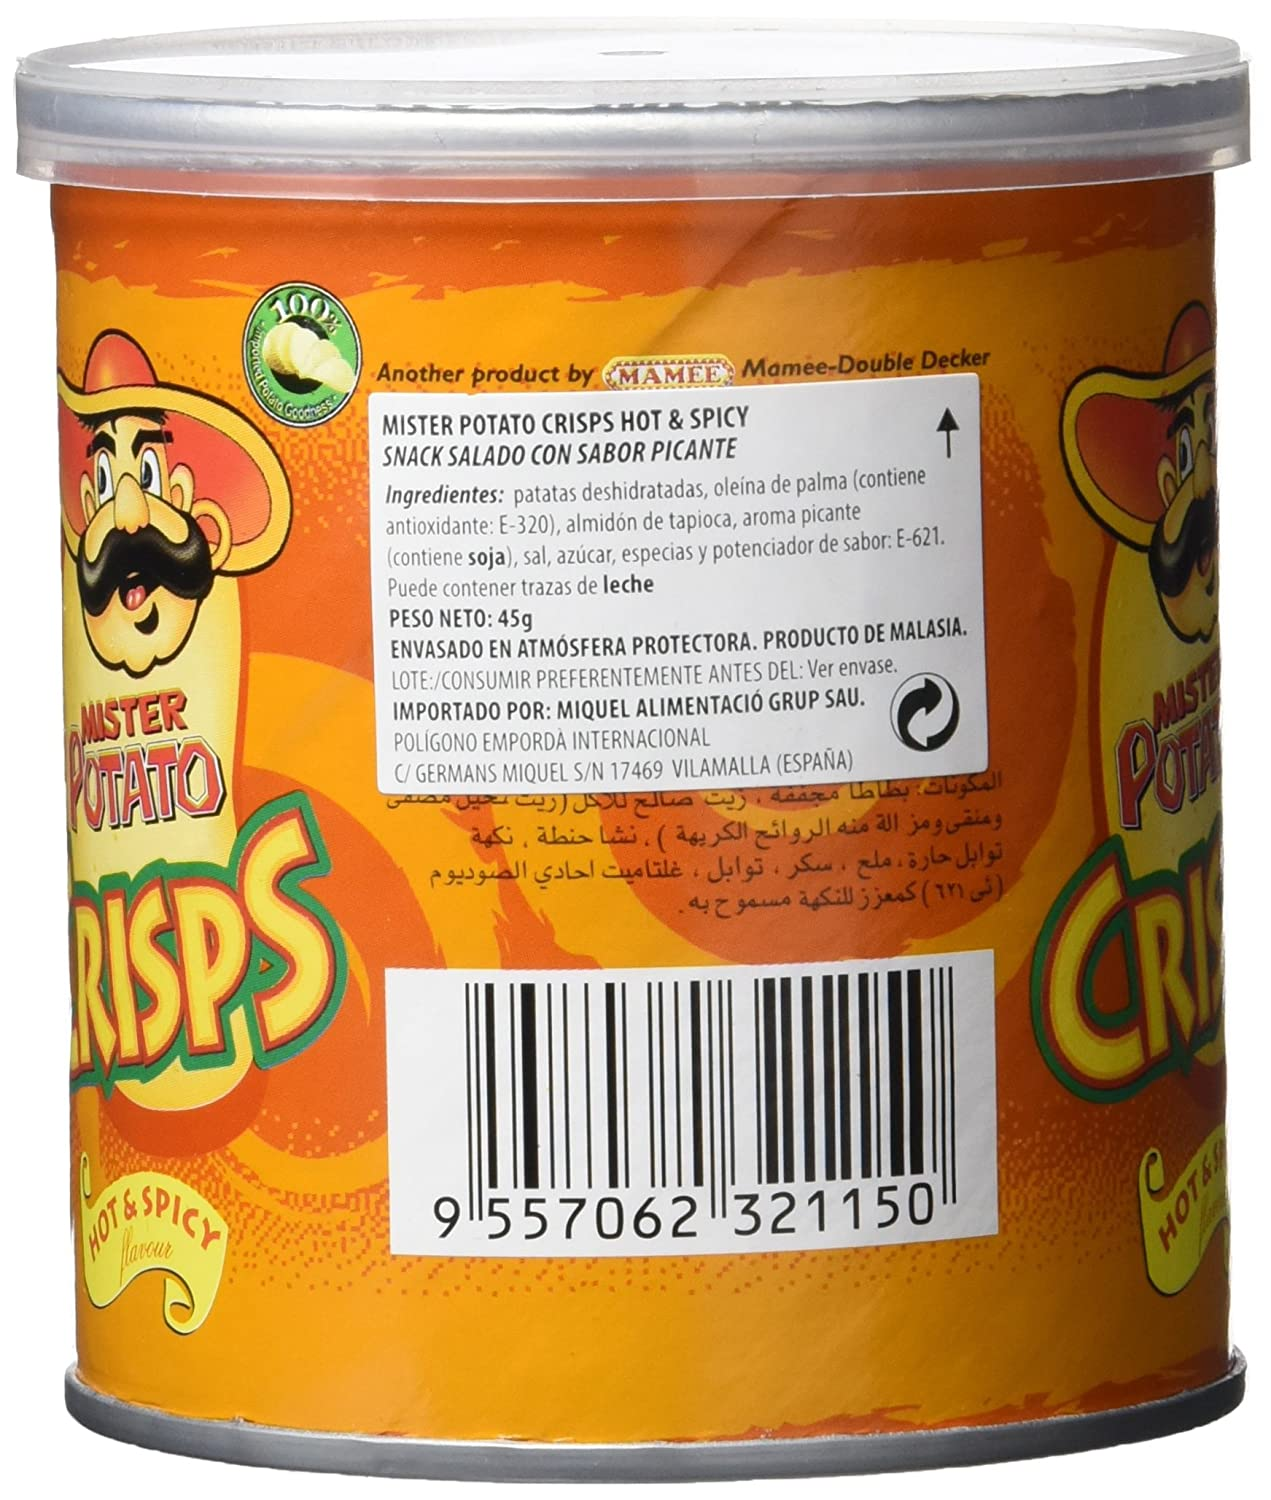 Mister Potato - Crisps Hot & Spicy - Snack salado con sabor ...